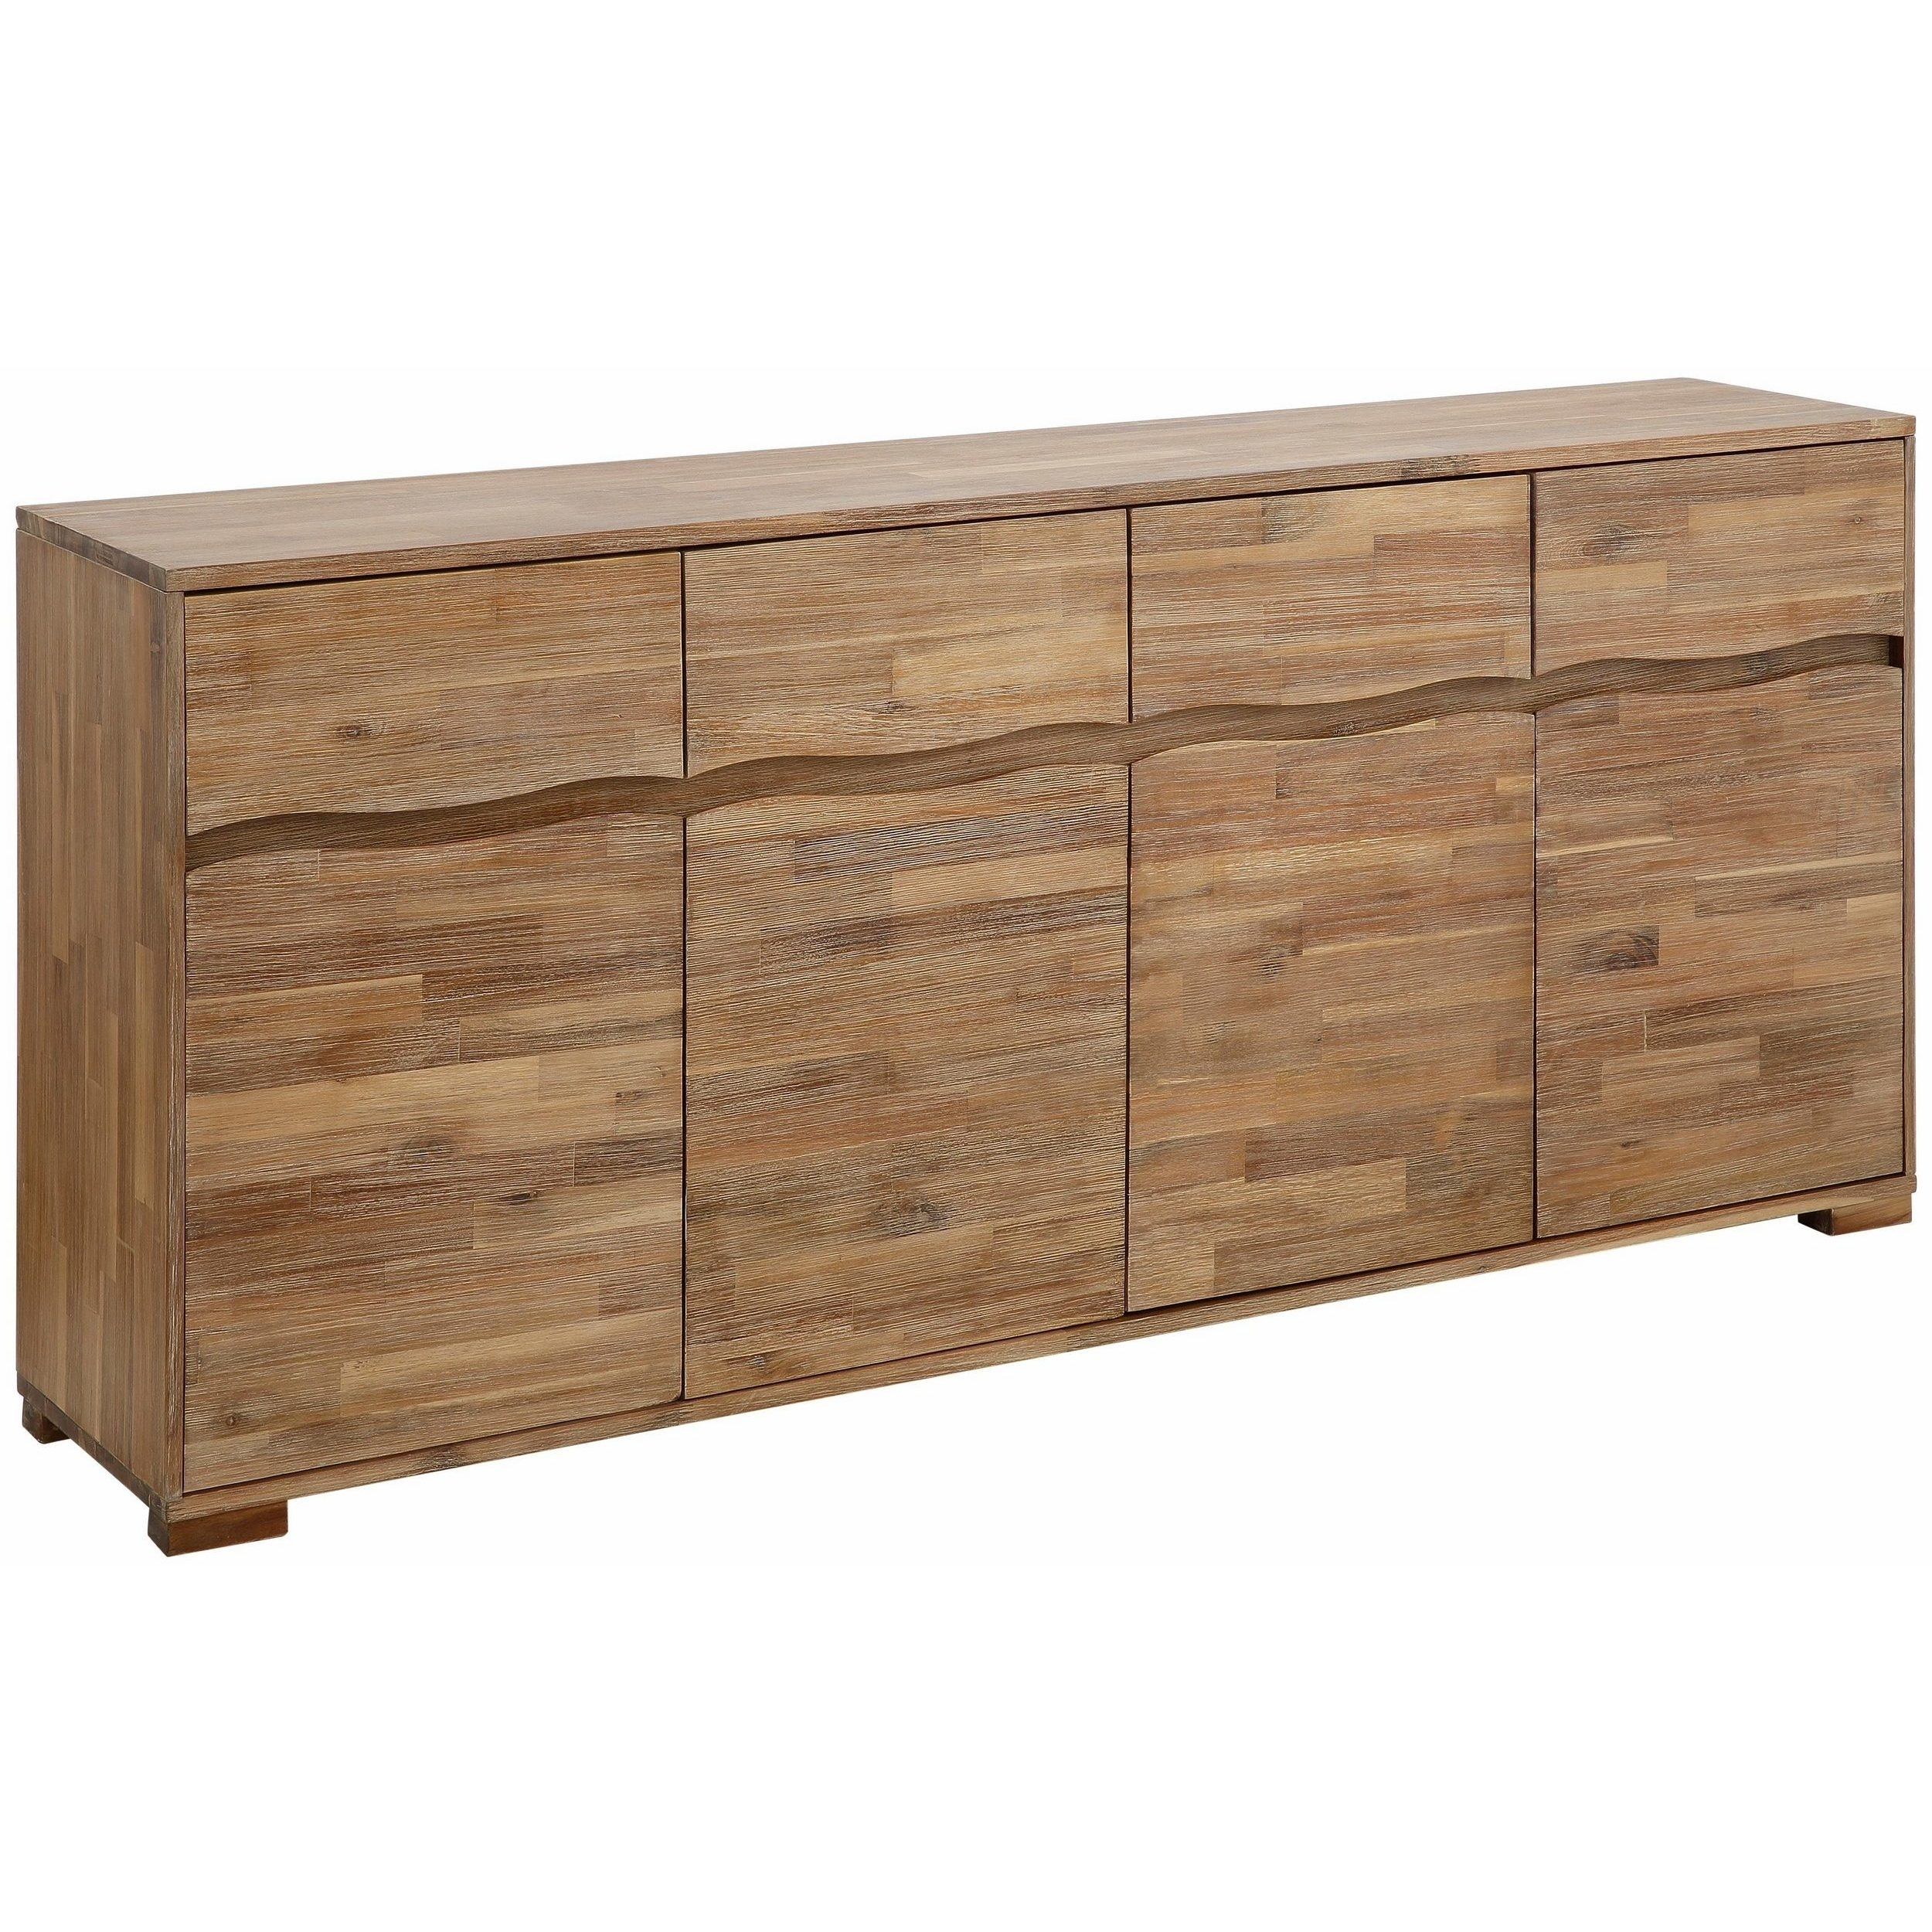 Shop Surf Sideboard With 4 Doors And 4 Drawers, Acacia Wood - On throughout Acacia Wood 4-Door Sideboards (Image 23 of 30)